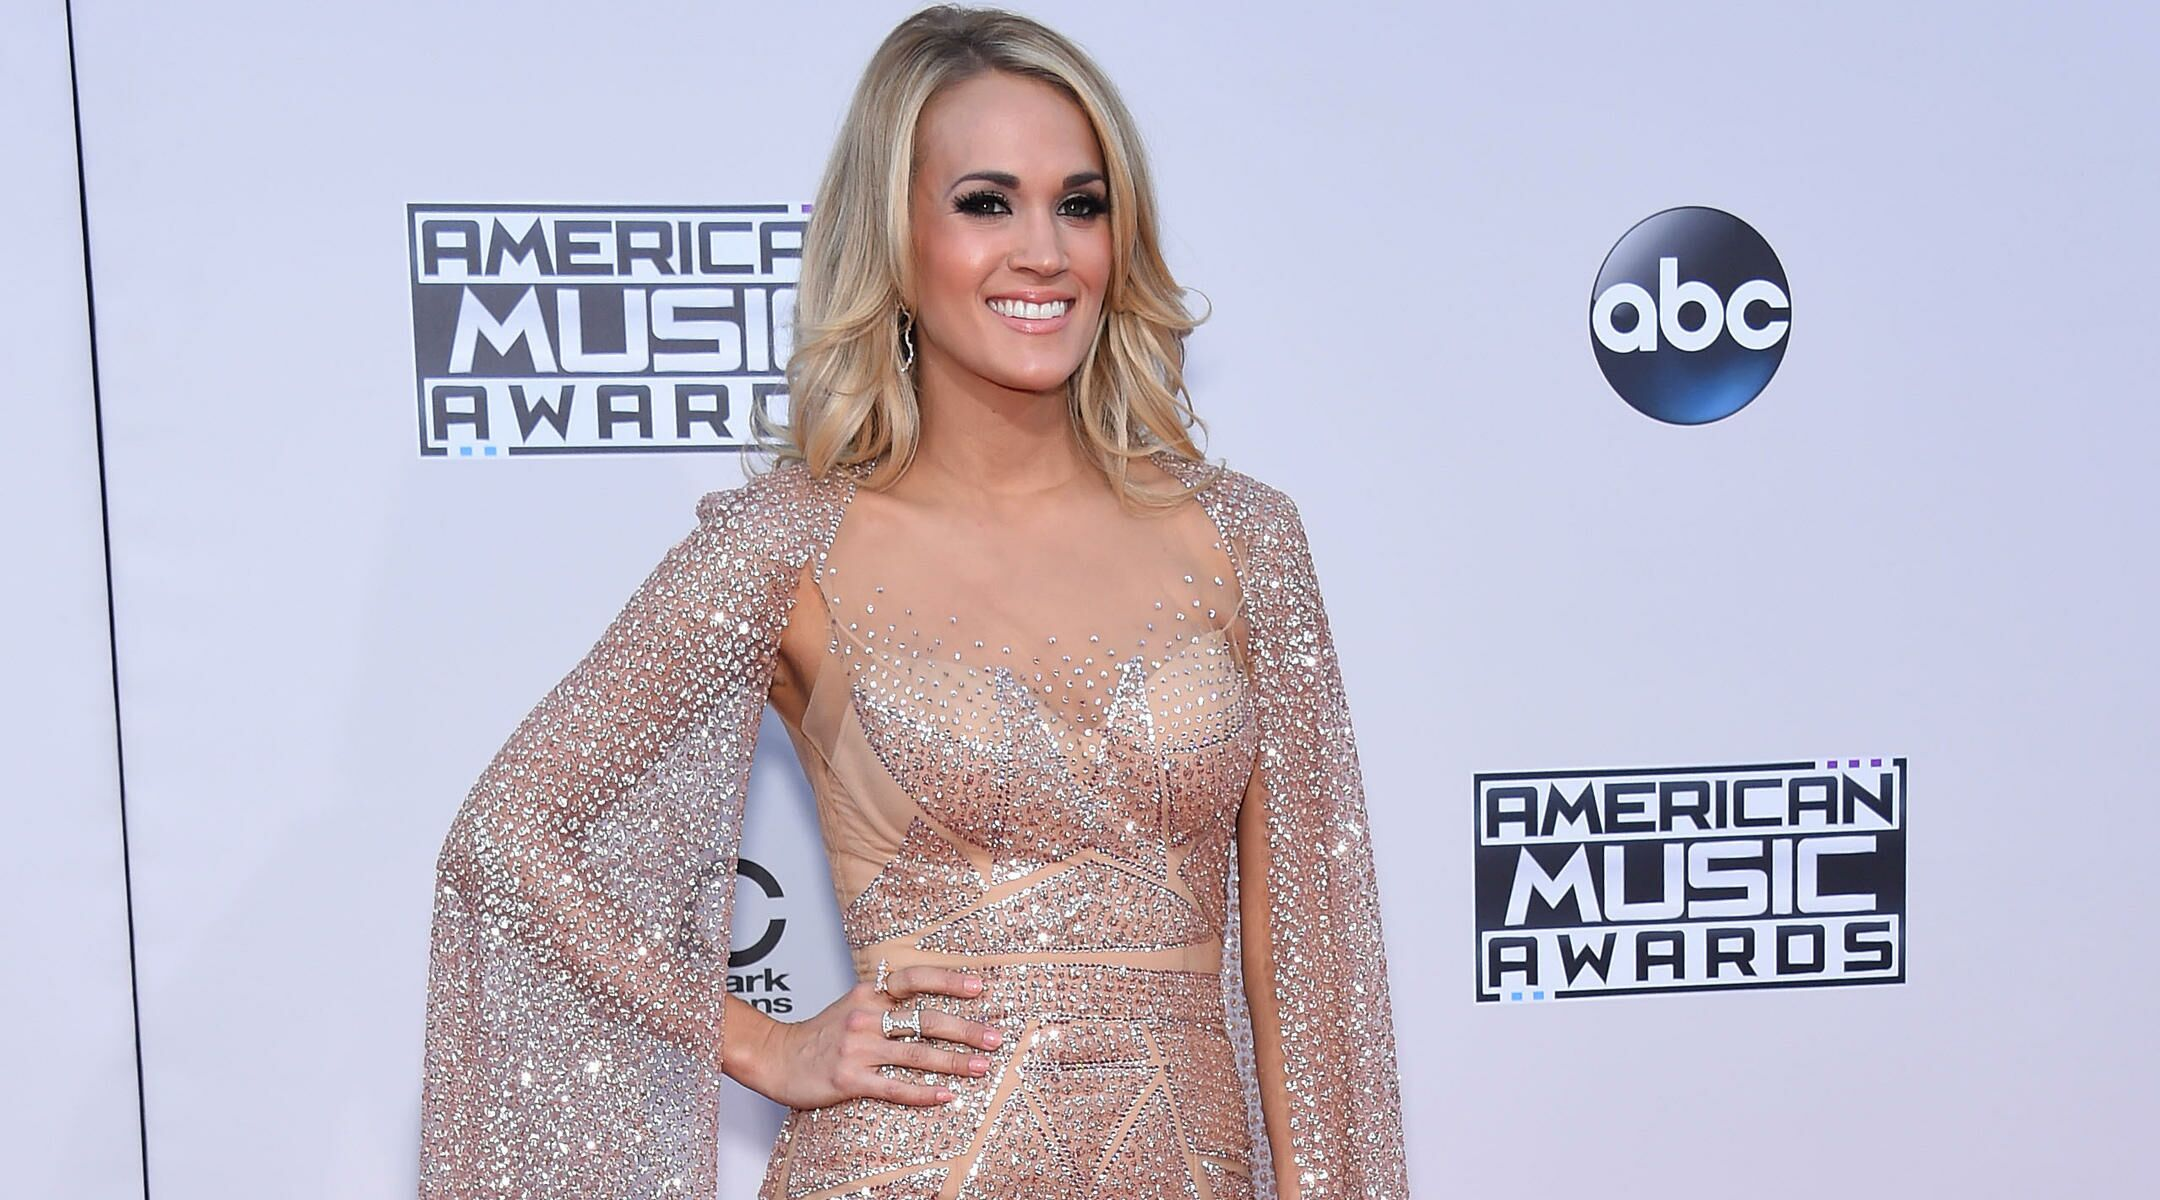 Carrie Underwood Welcomes Baby Boy